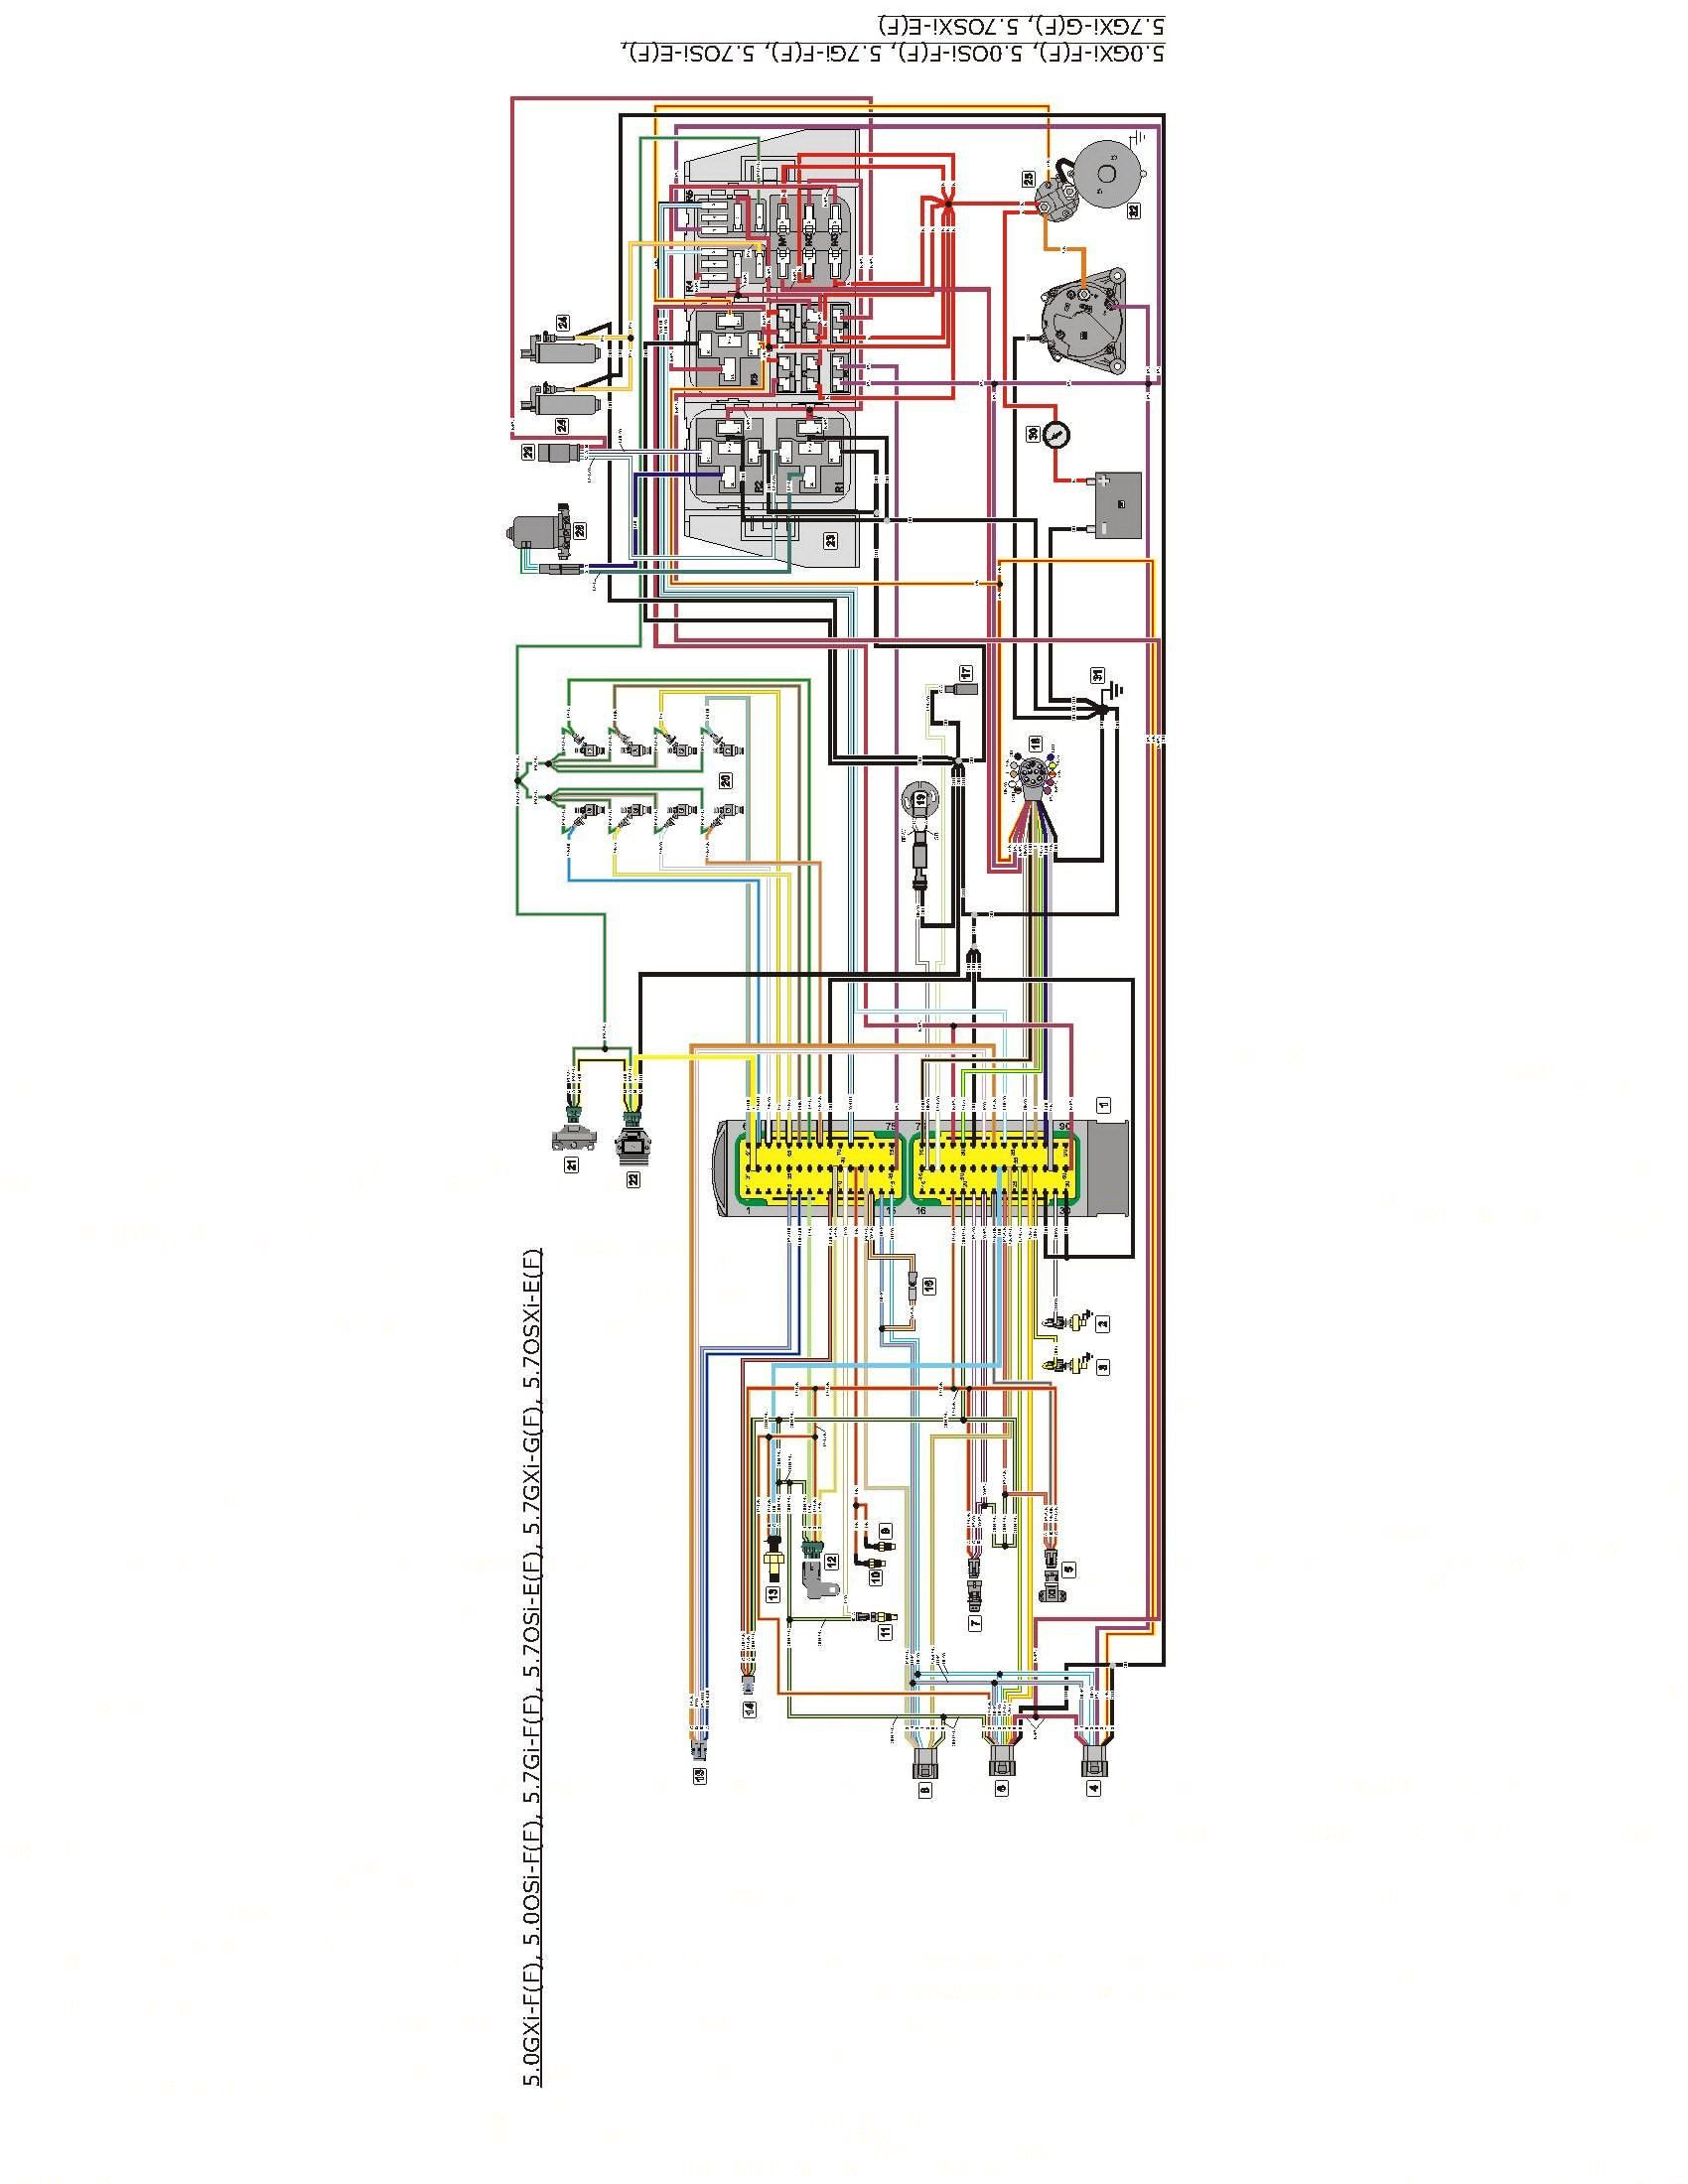 Volvo Trim Wiring Diagram Wire Data Schema A Abloy Diagrams Mercury Outboard Power Lovely For Rh Pinterest Com Penta 280 Tilt